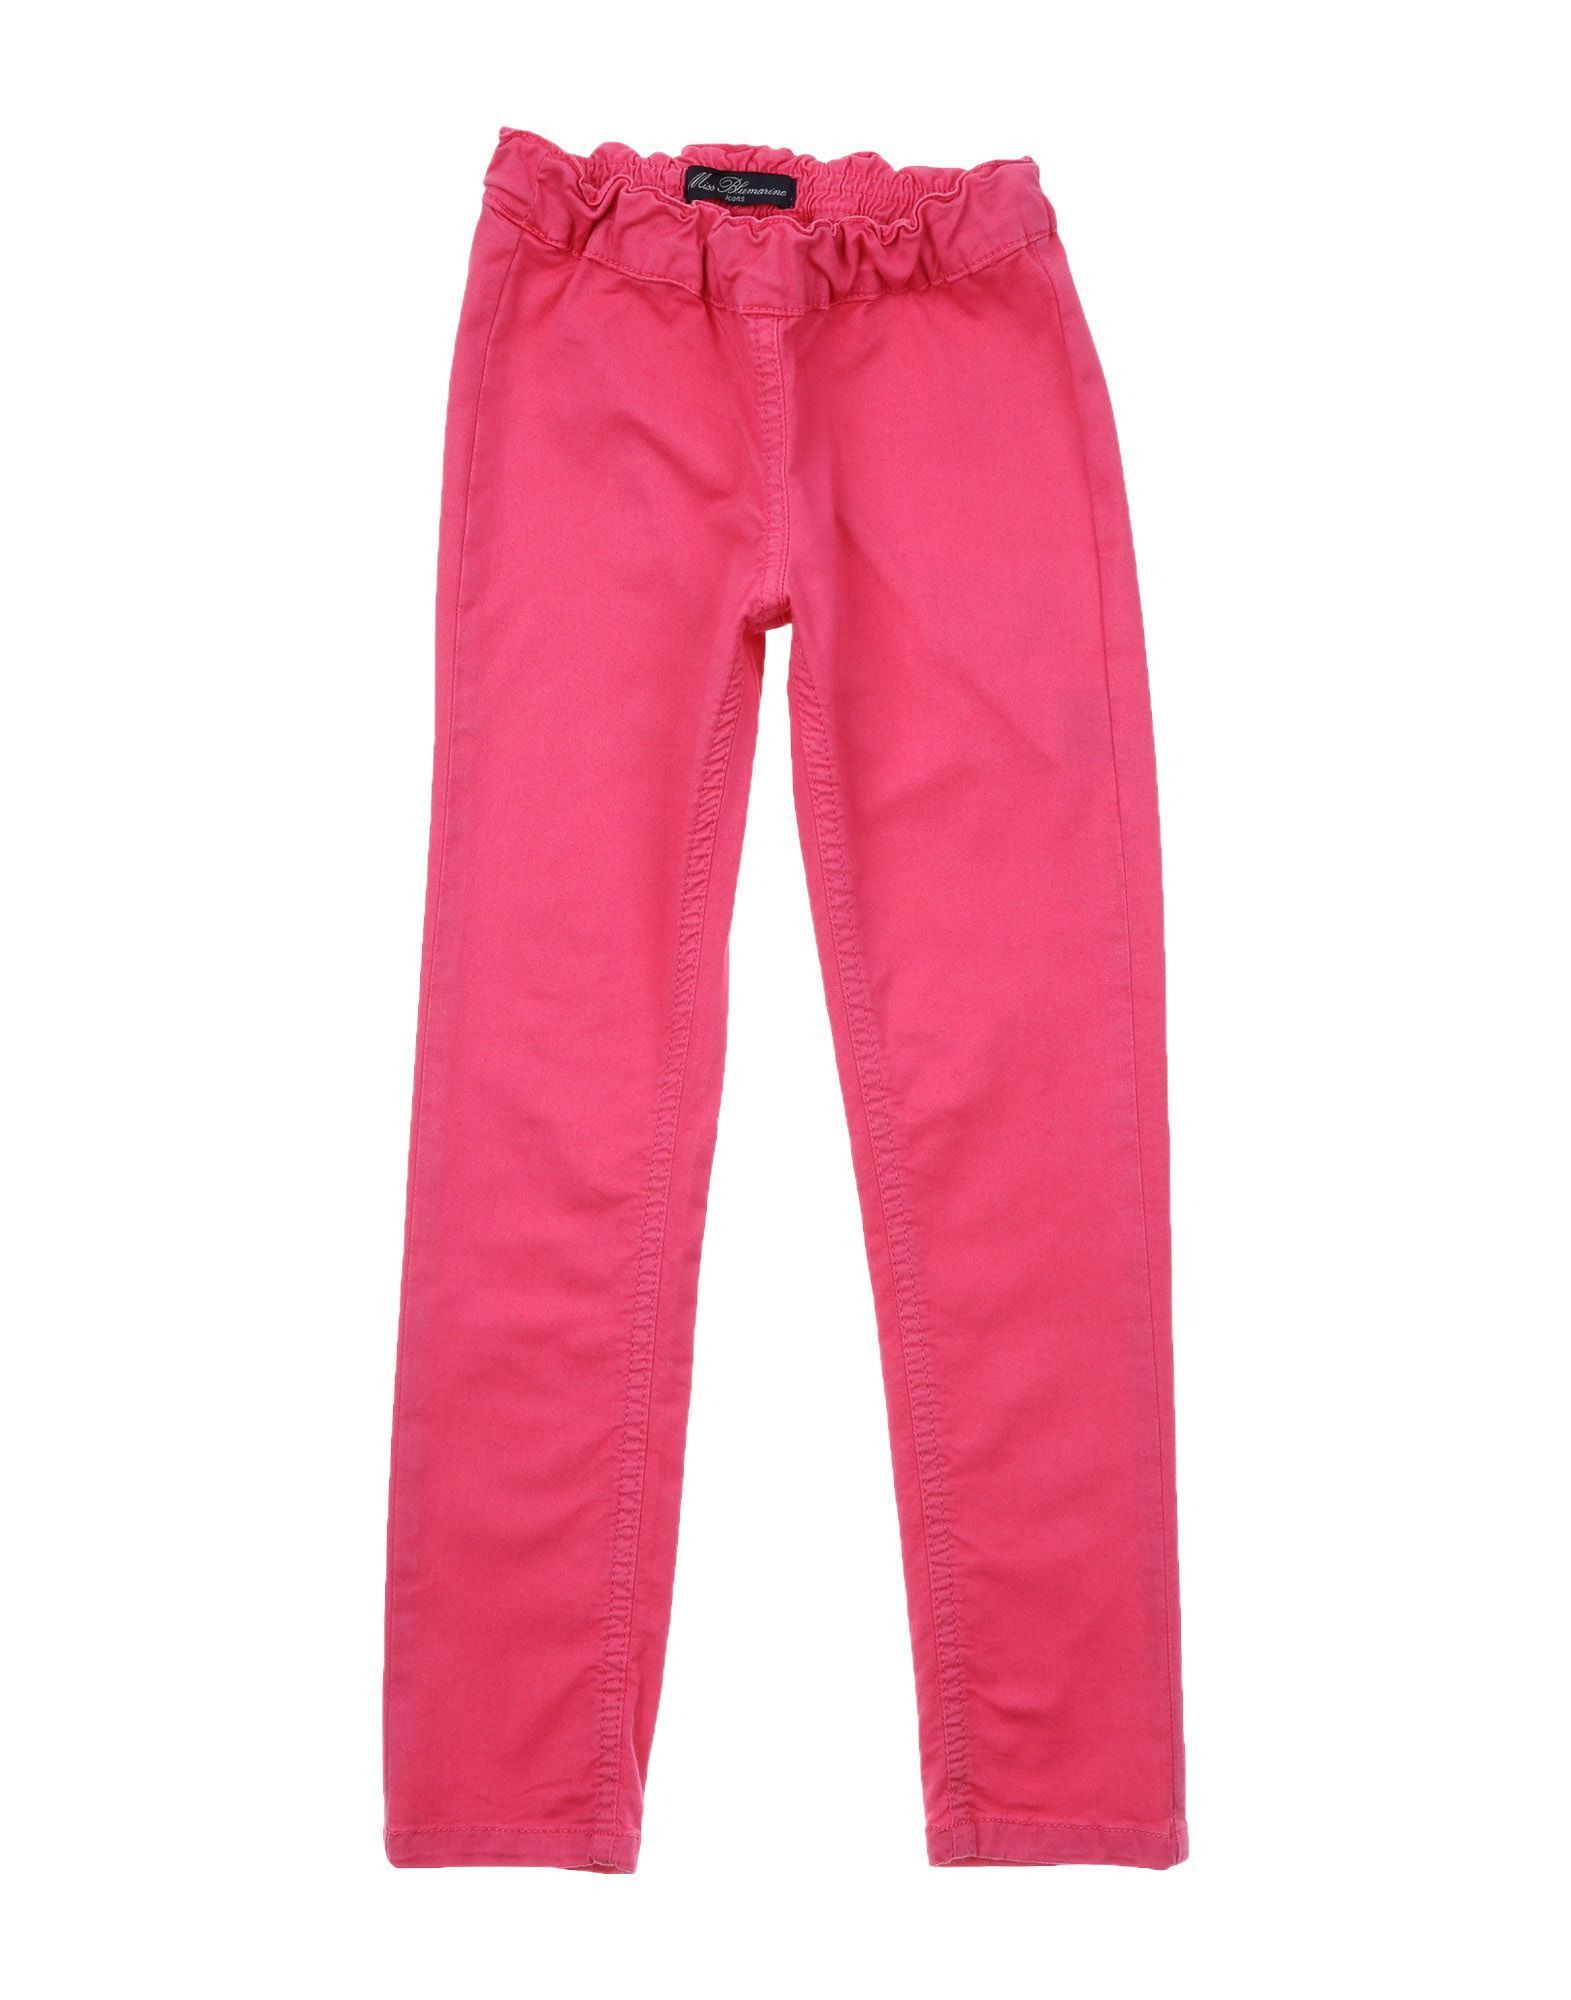 TROUSERS Miss Blumarine Fuchsia Girl Cotton